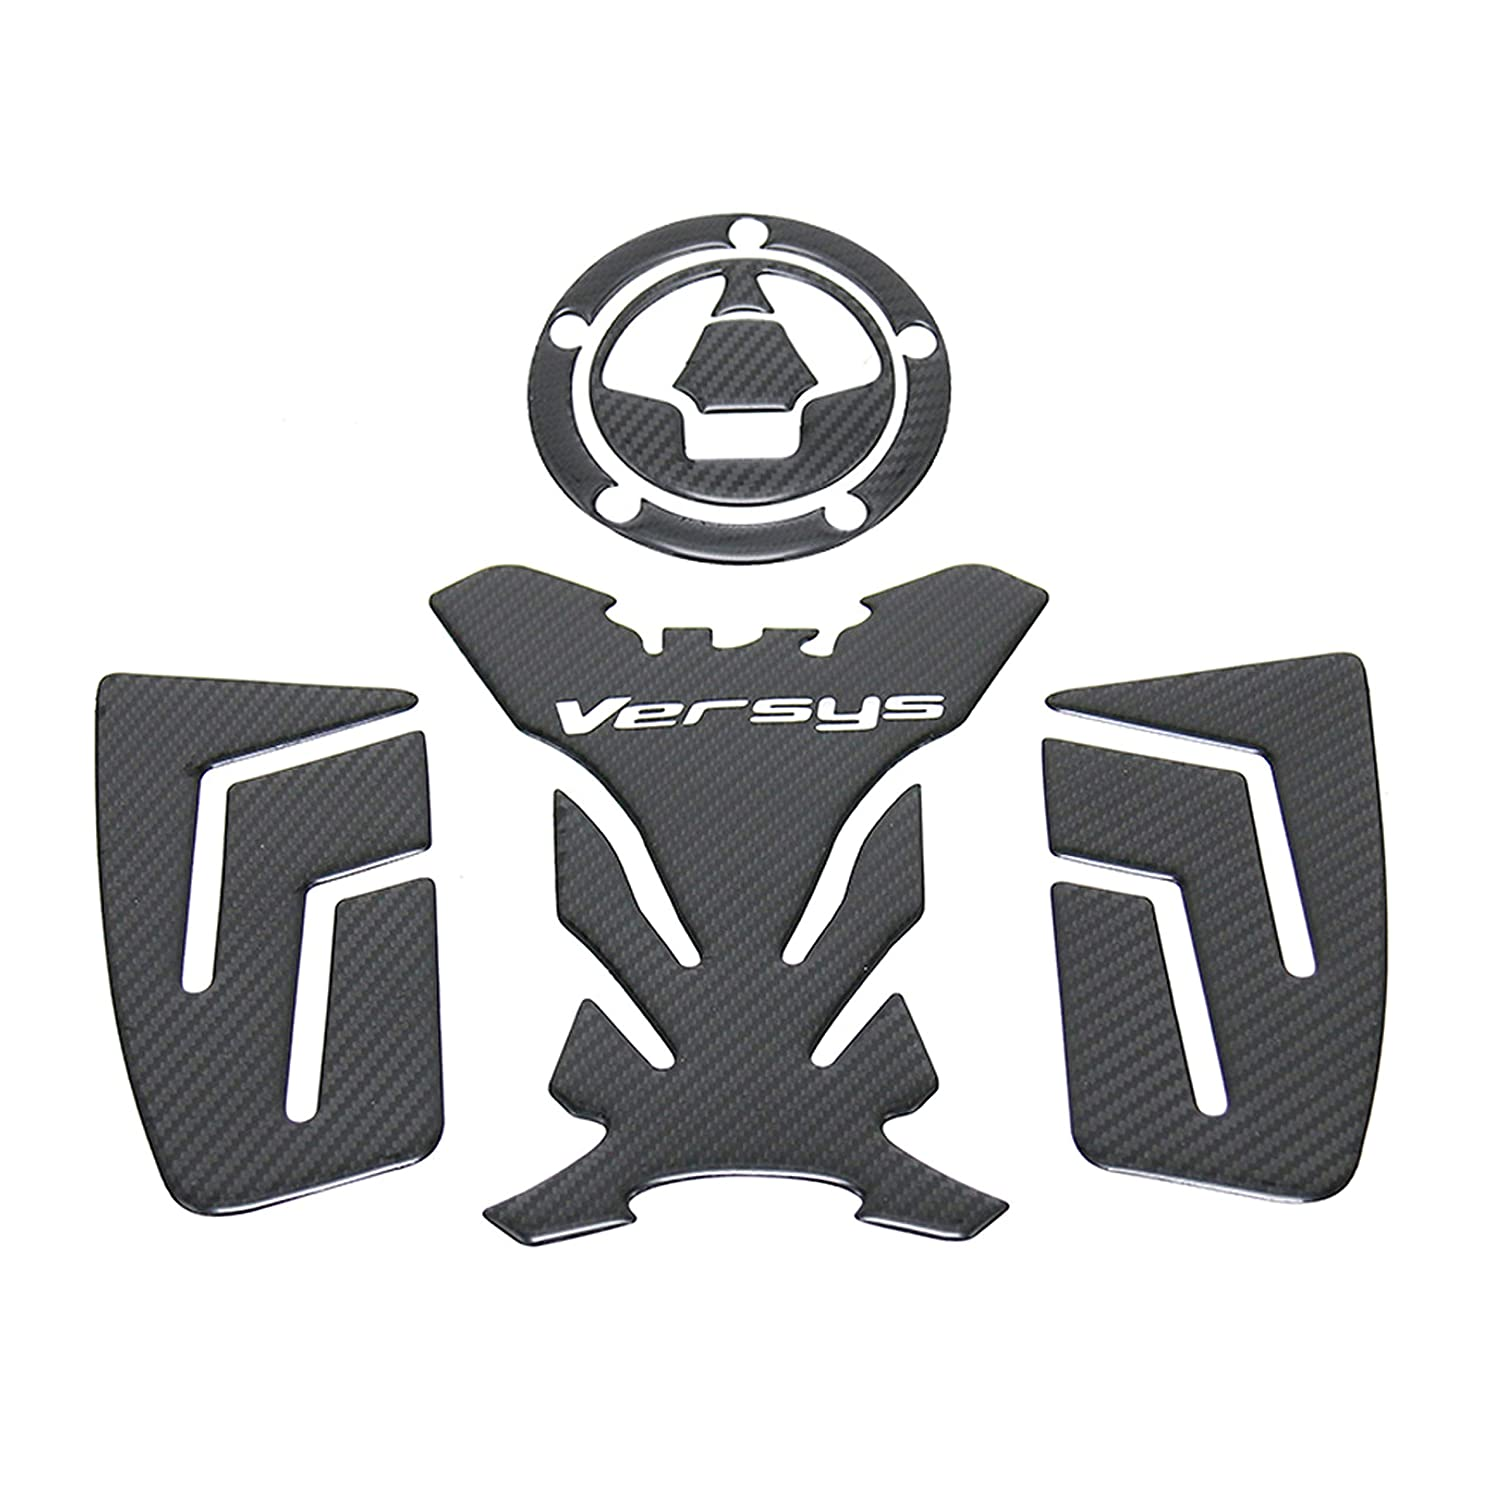 Motorcycle 3D Emblem Fuel Tank Traction Side Pad Knee Grip Decal Protective Stickers For Kawasai versys 650